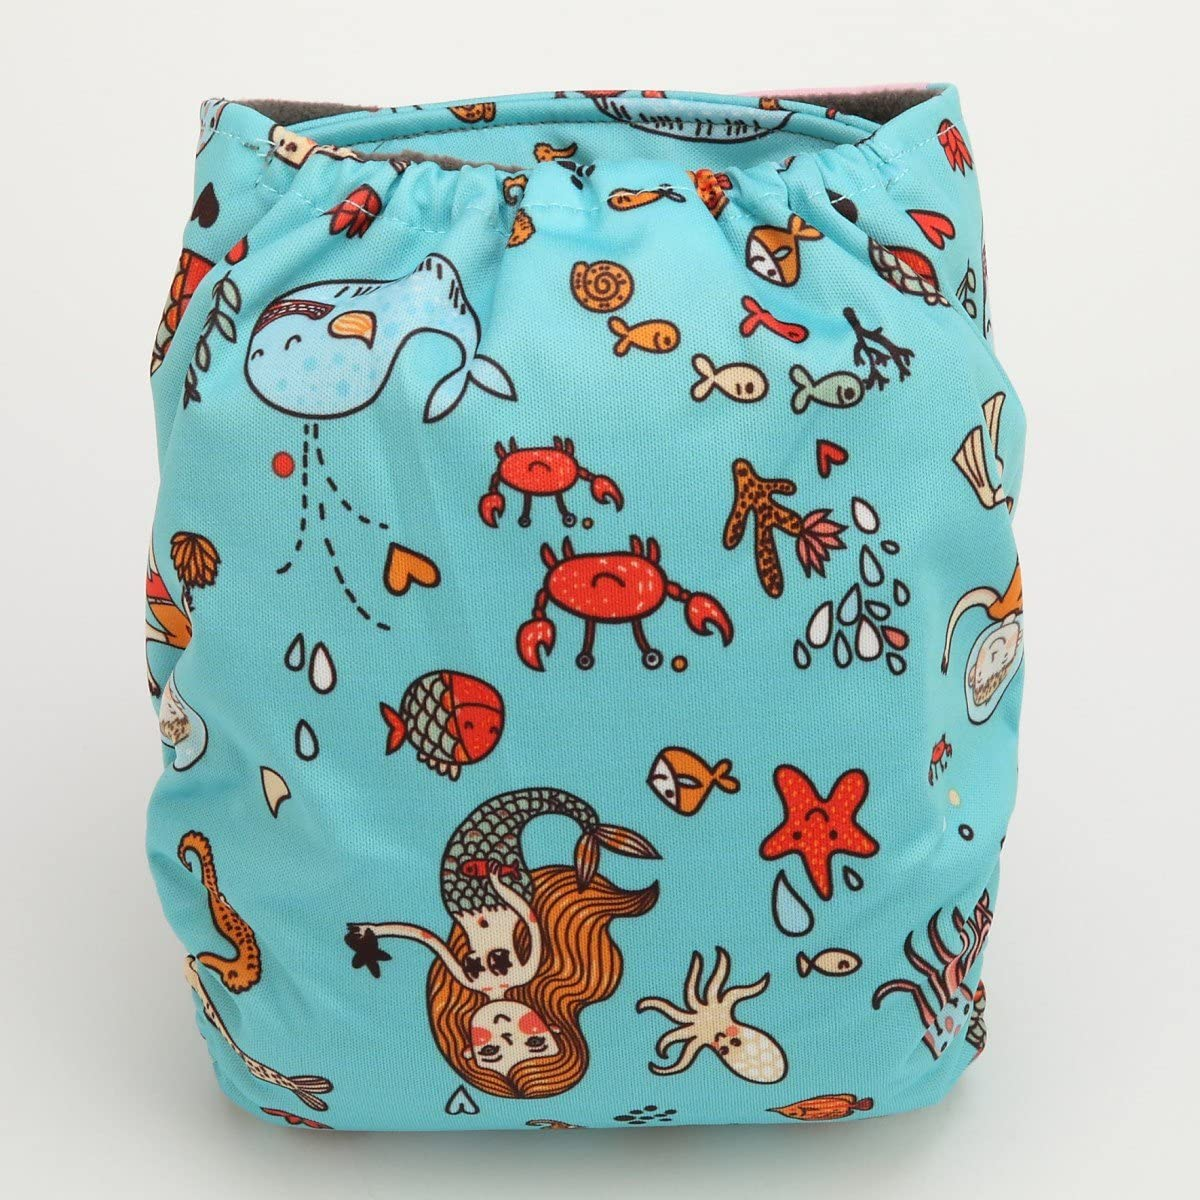 Twinkly Sigzagor AIll in One Night AIO Cloth Diaper Nappy Sewn in Charcoal Bamboo Insert Reusable Washable